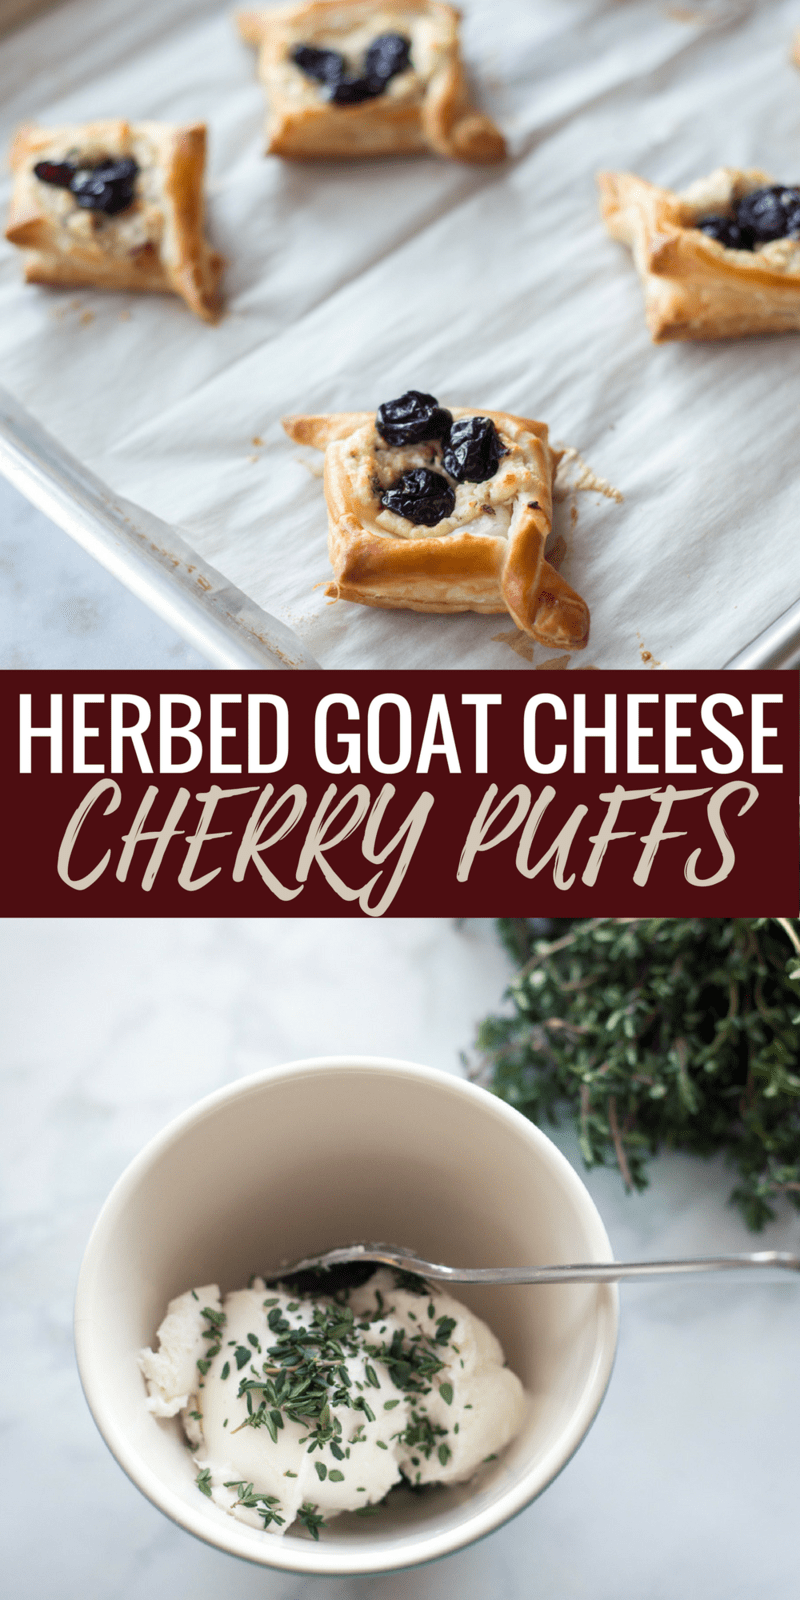 These herbed goat cheese cherry puffs are the perfect appetizer for any party! This dessert recipe is super easy and the results are INCREDIBLE! Can't wait to bake these again, pinning for later!